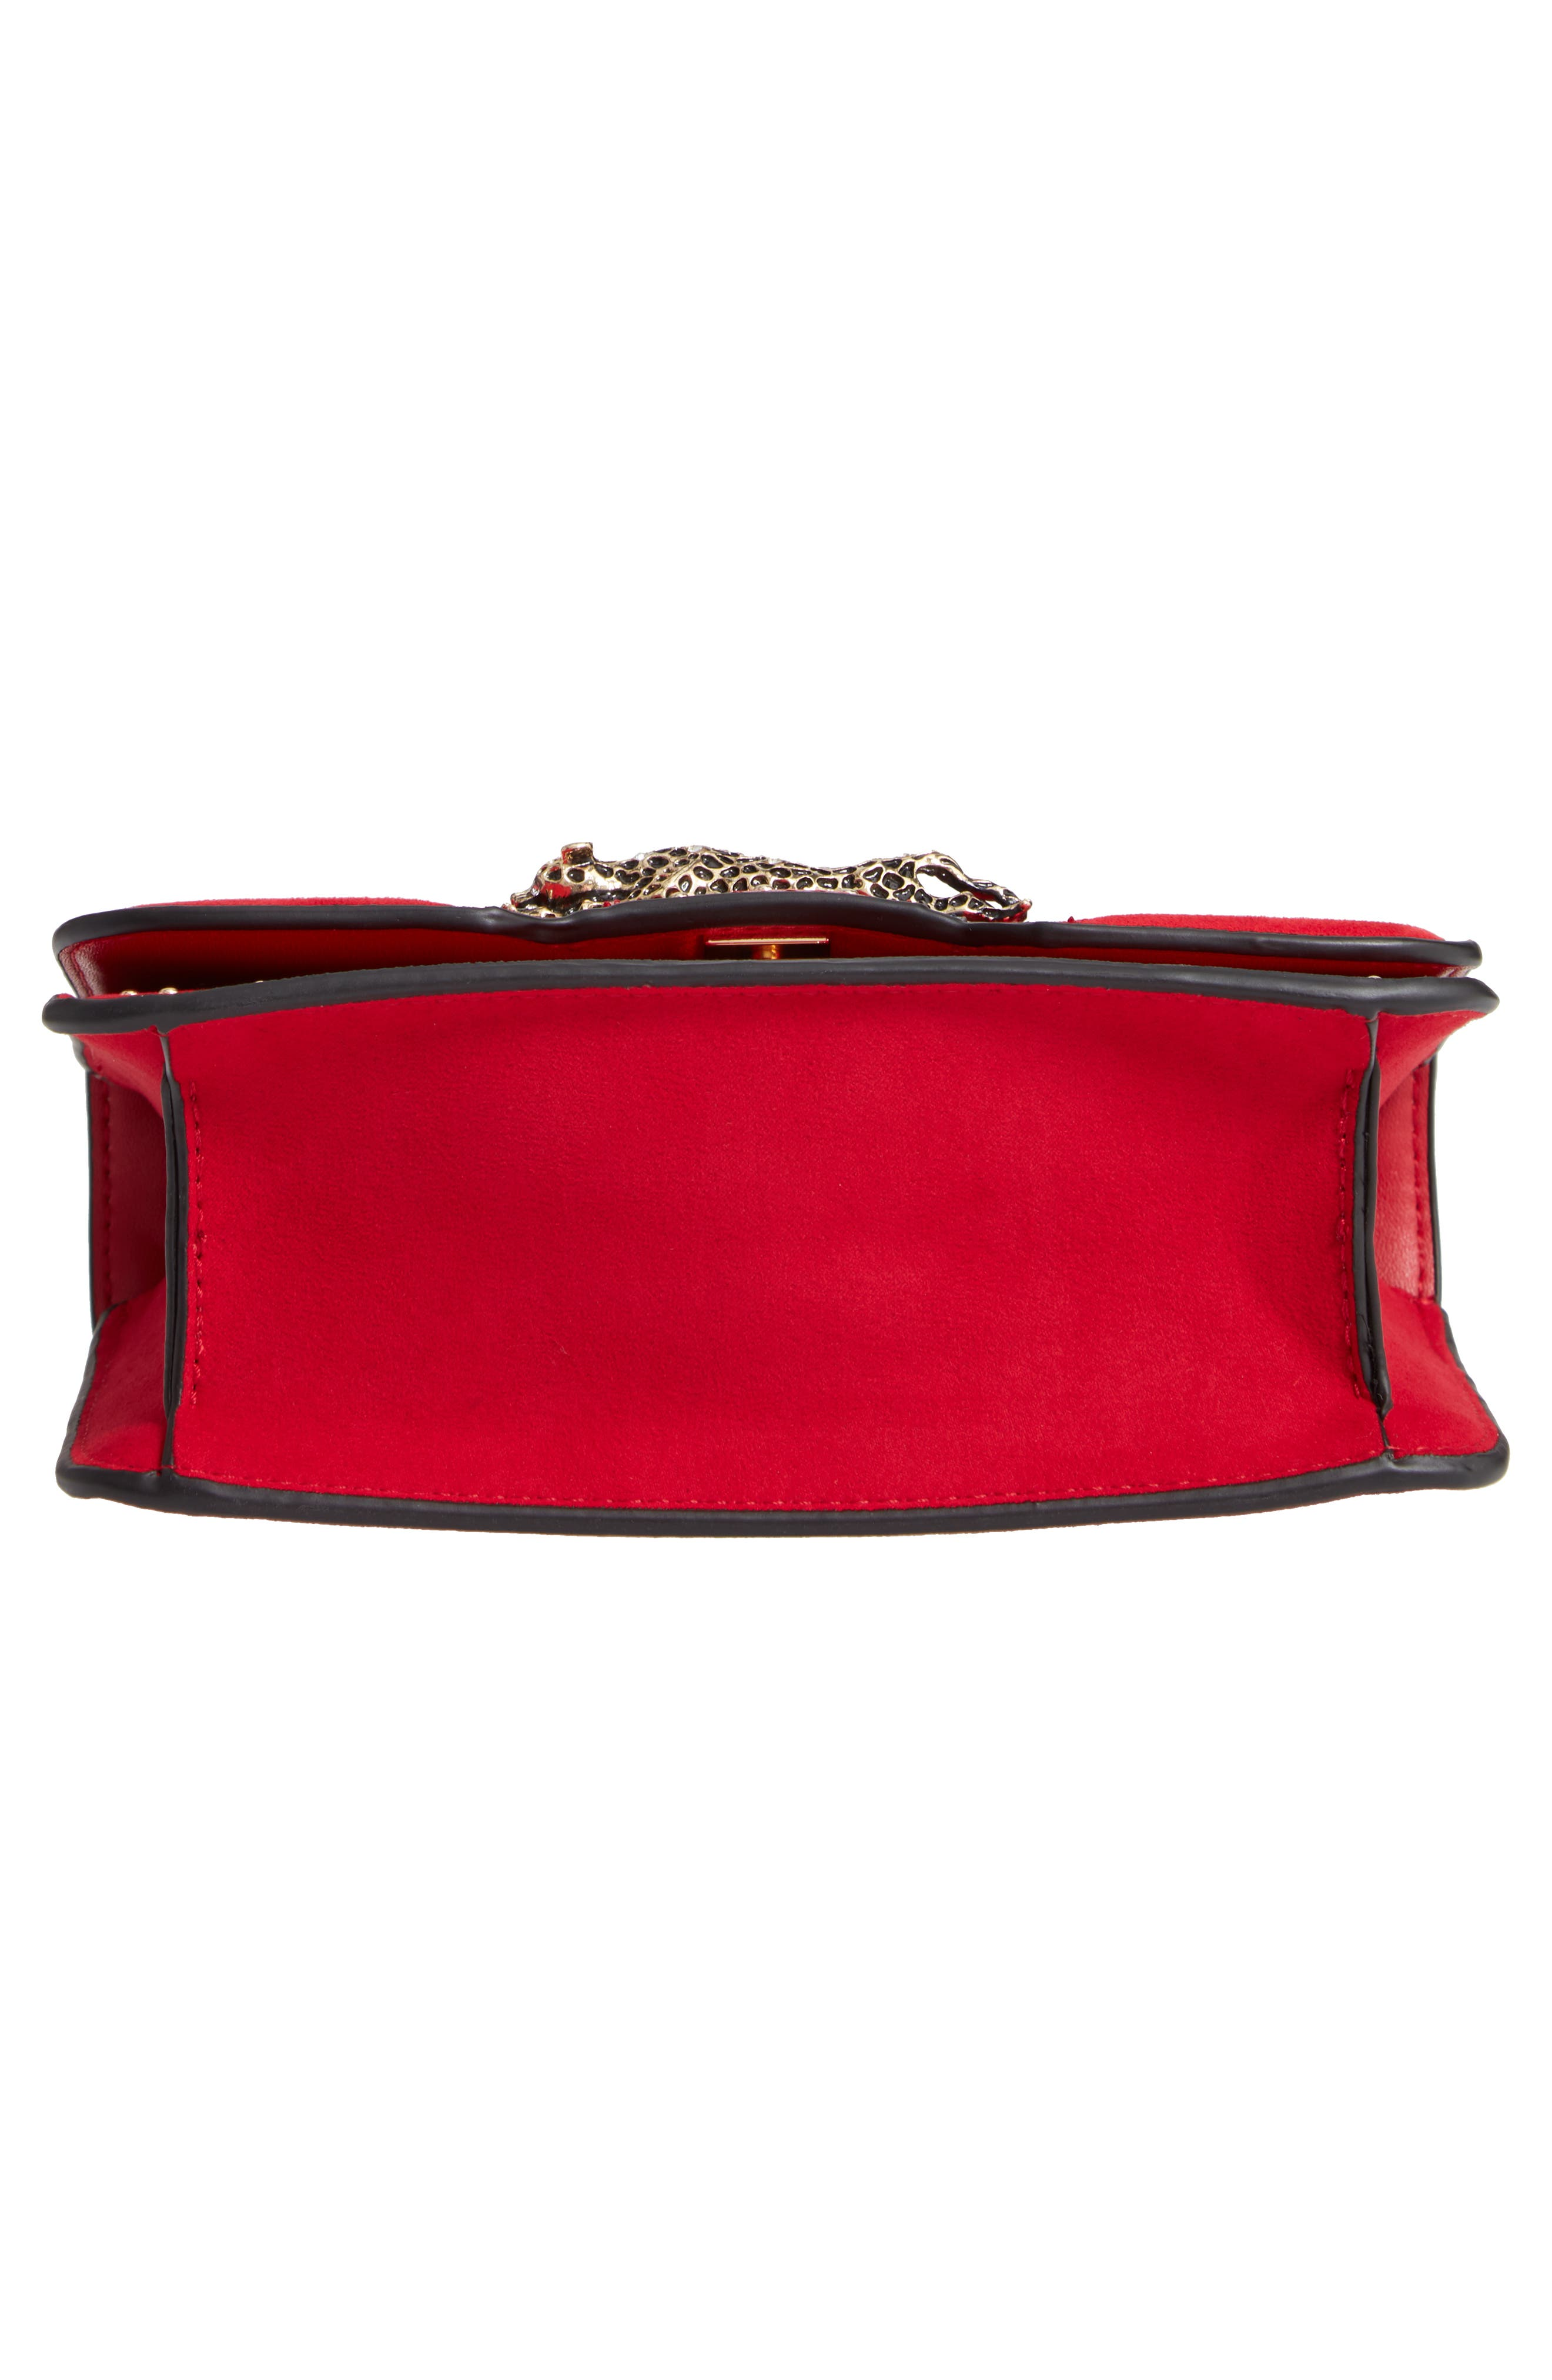 Panther Crossbody Bag,                             Alternate thumbnail 6, color,                             RED